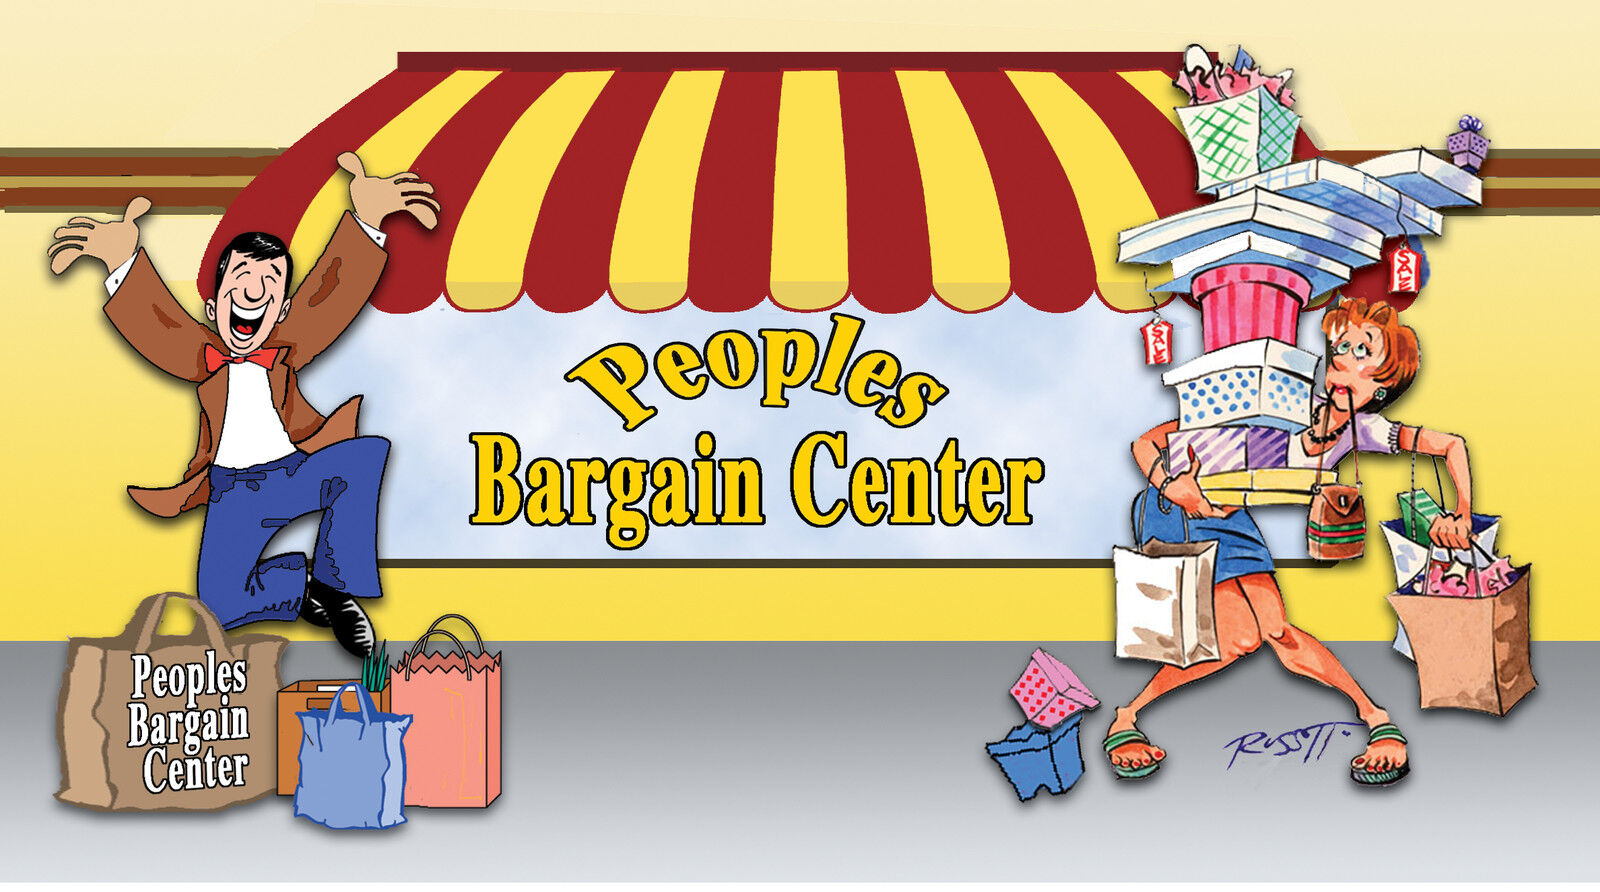 People's Bargain Center